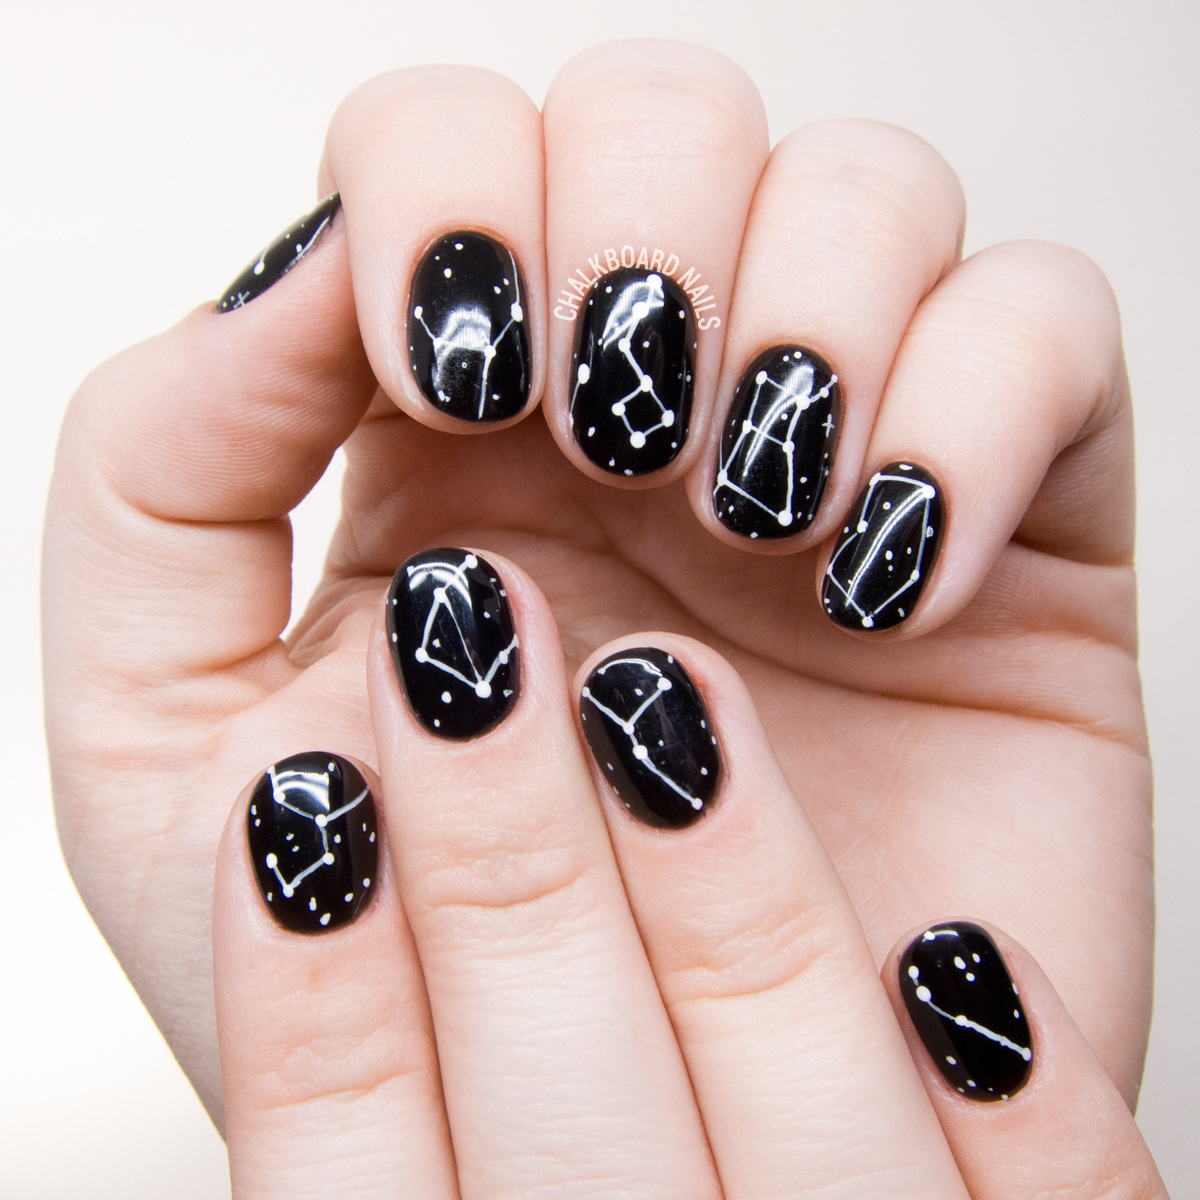 Simple Constellation Nail Art - Simple Constellation Nail Art Chalkboard Nails Nail Art Blog